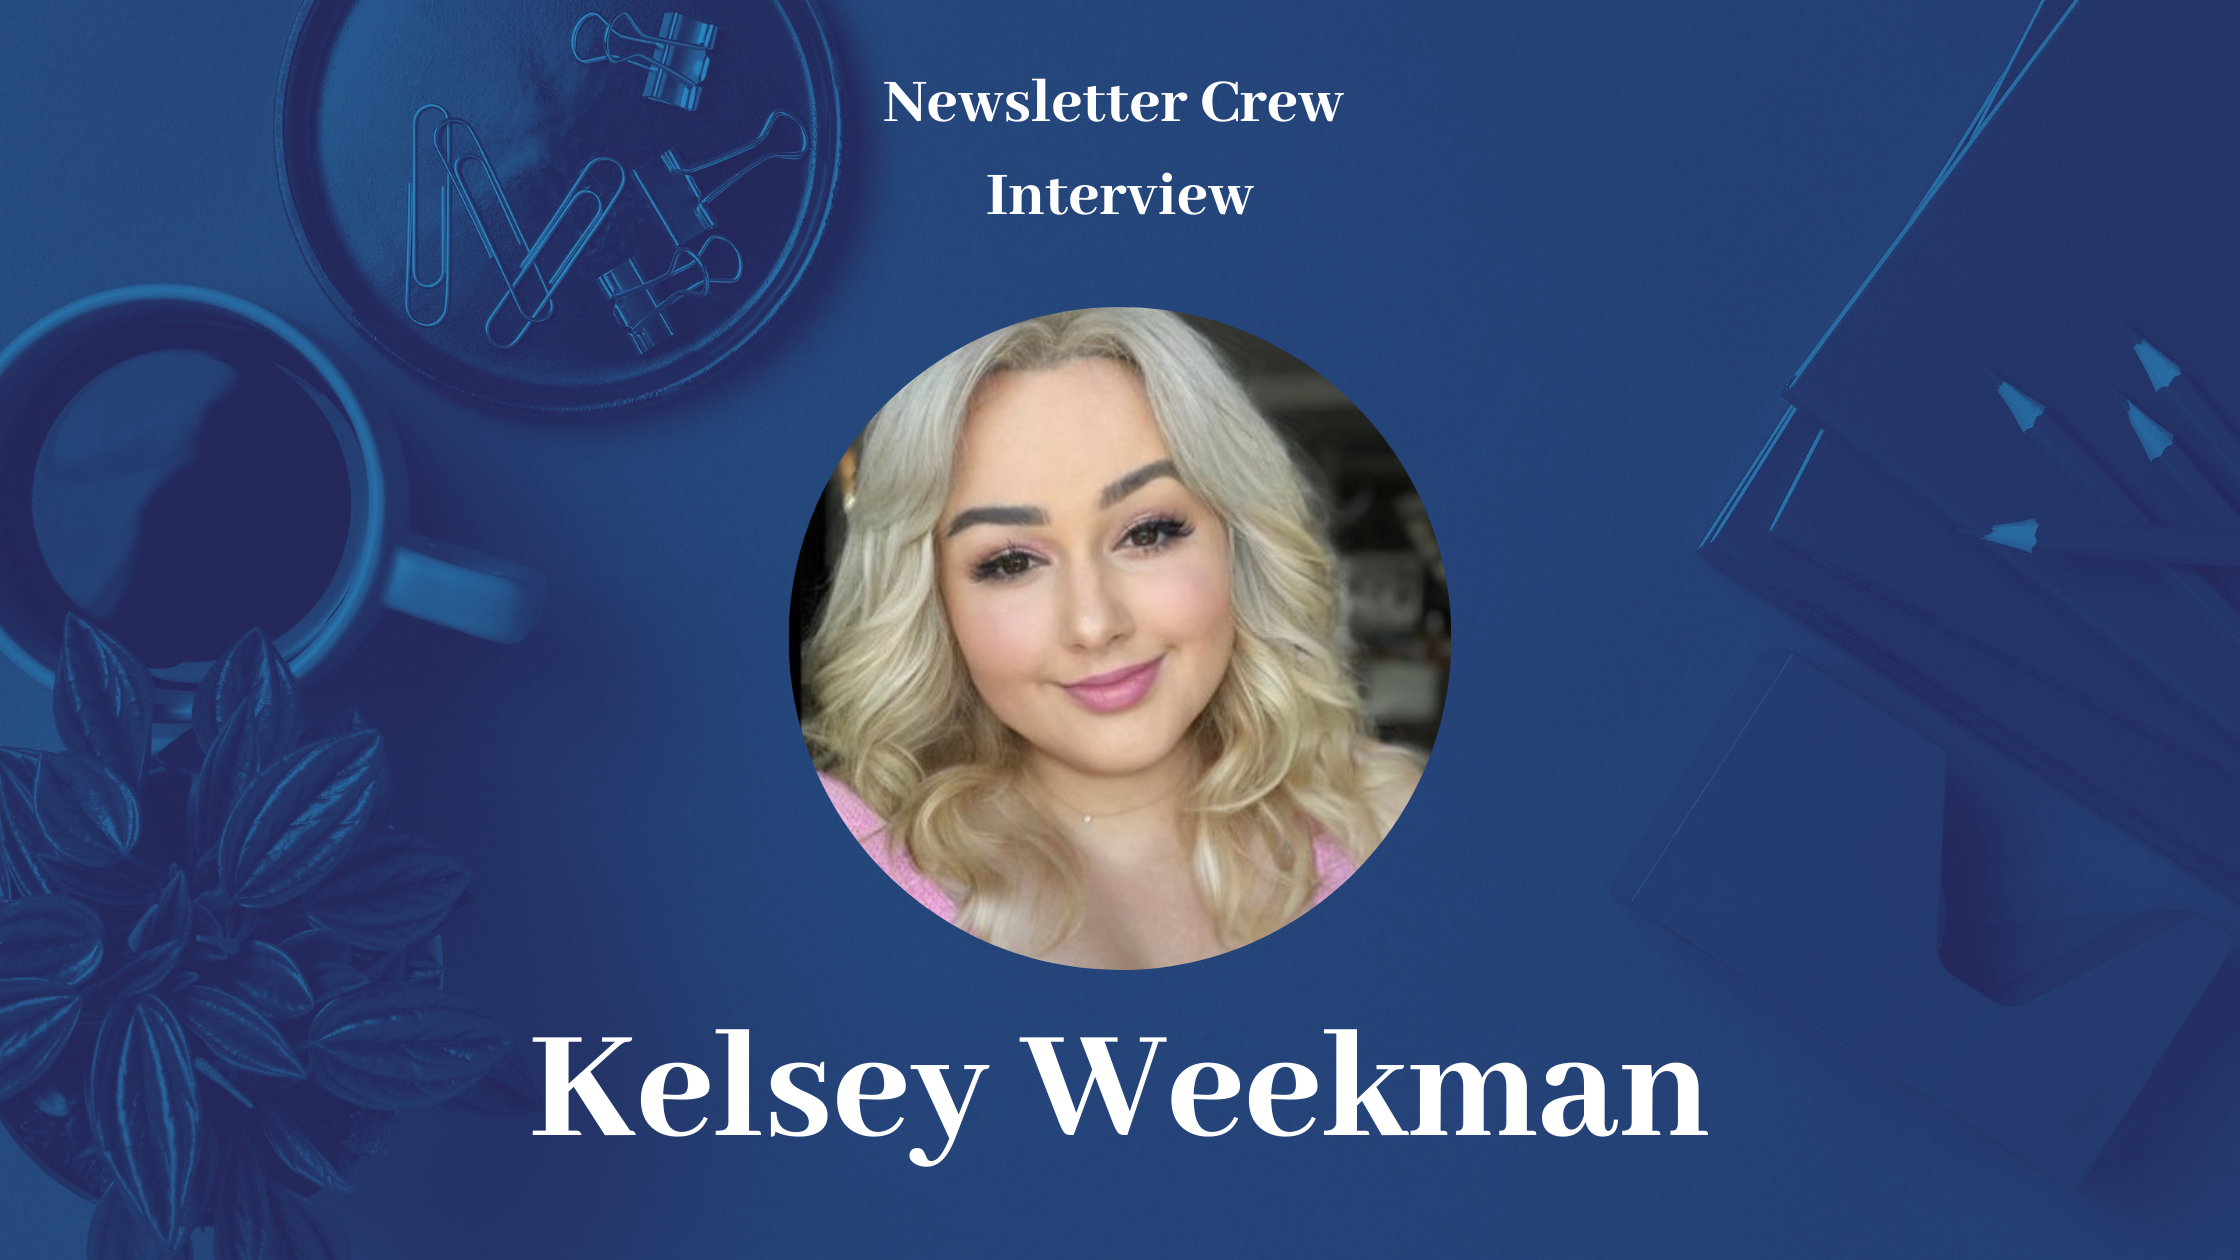 Writing Simply and Authentically with Kelsey Weekman